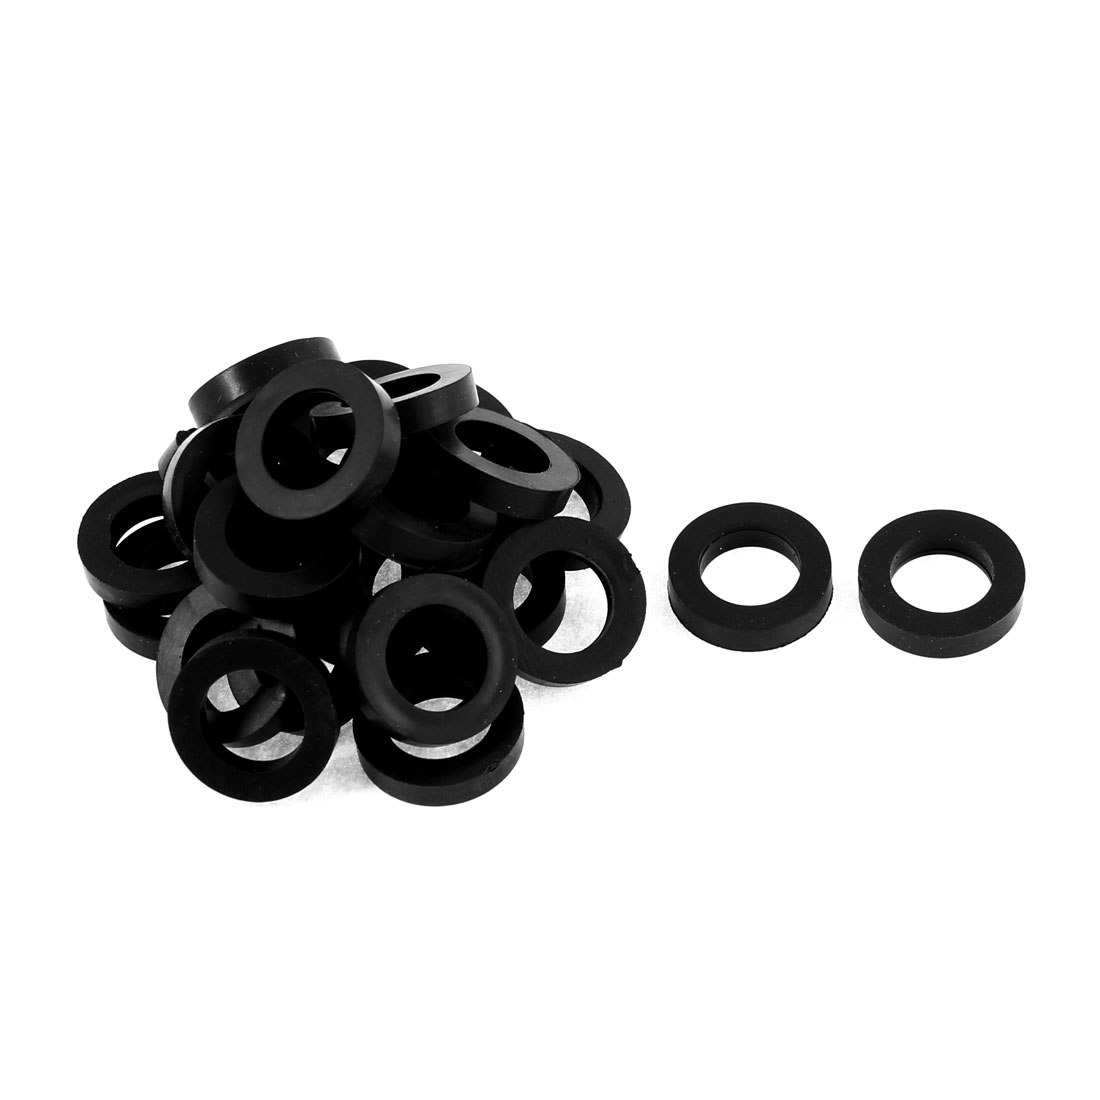 Home Water Faucet Rubber Seal Washer Sealer Black 19mm x 12mm x 2.1mm 25pcs